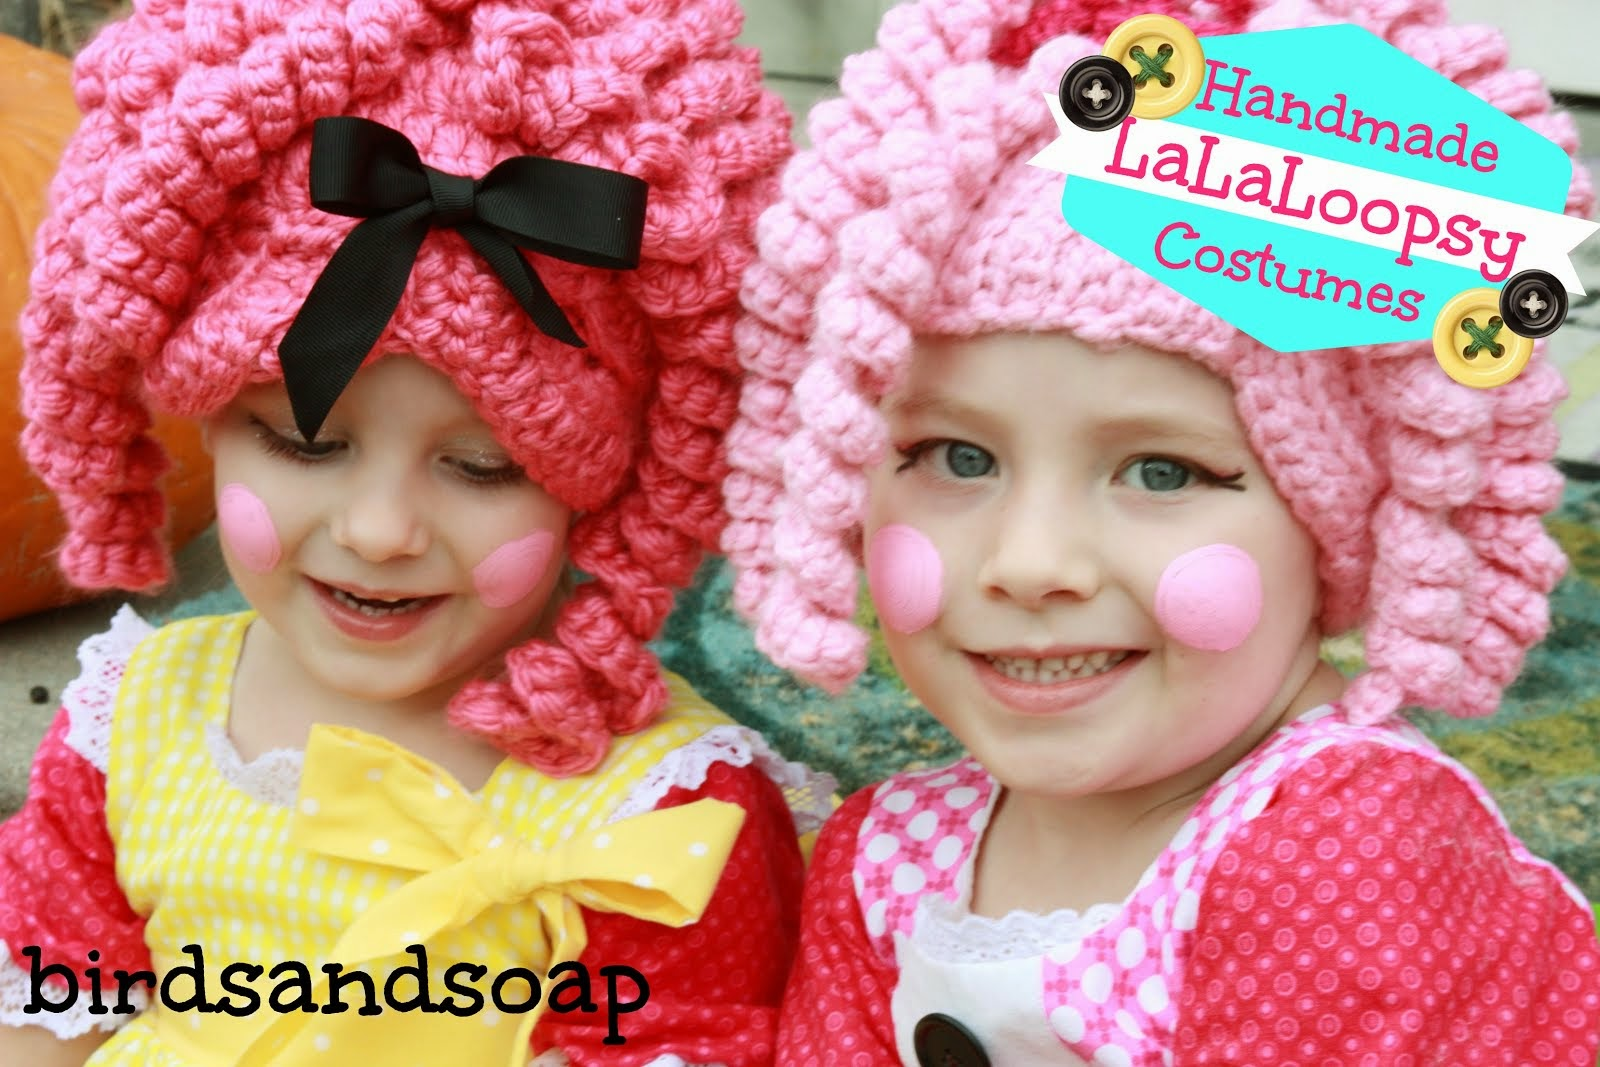 Check out my LaLaLoopsy Costume!